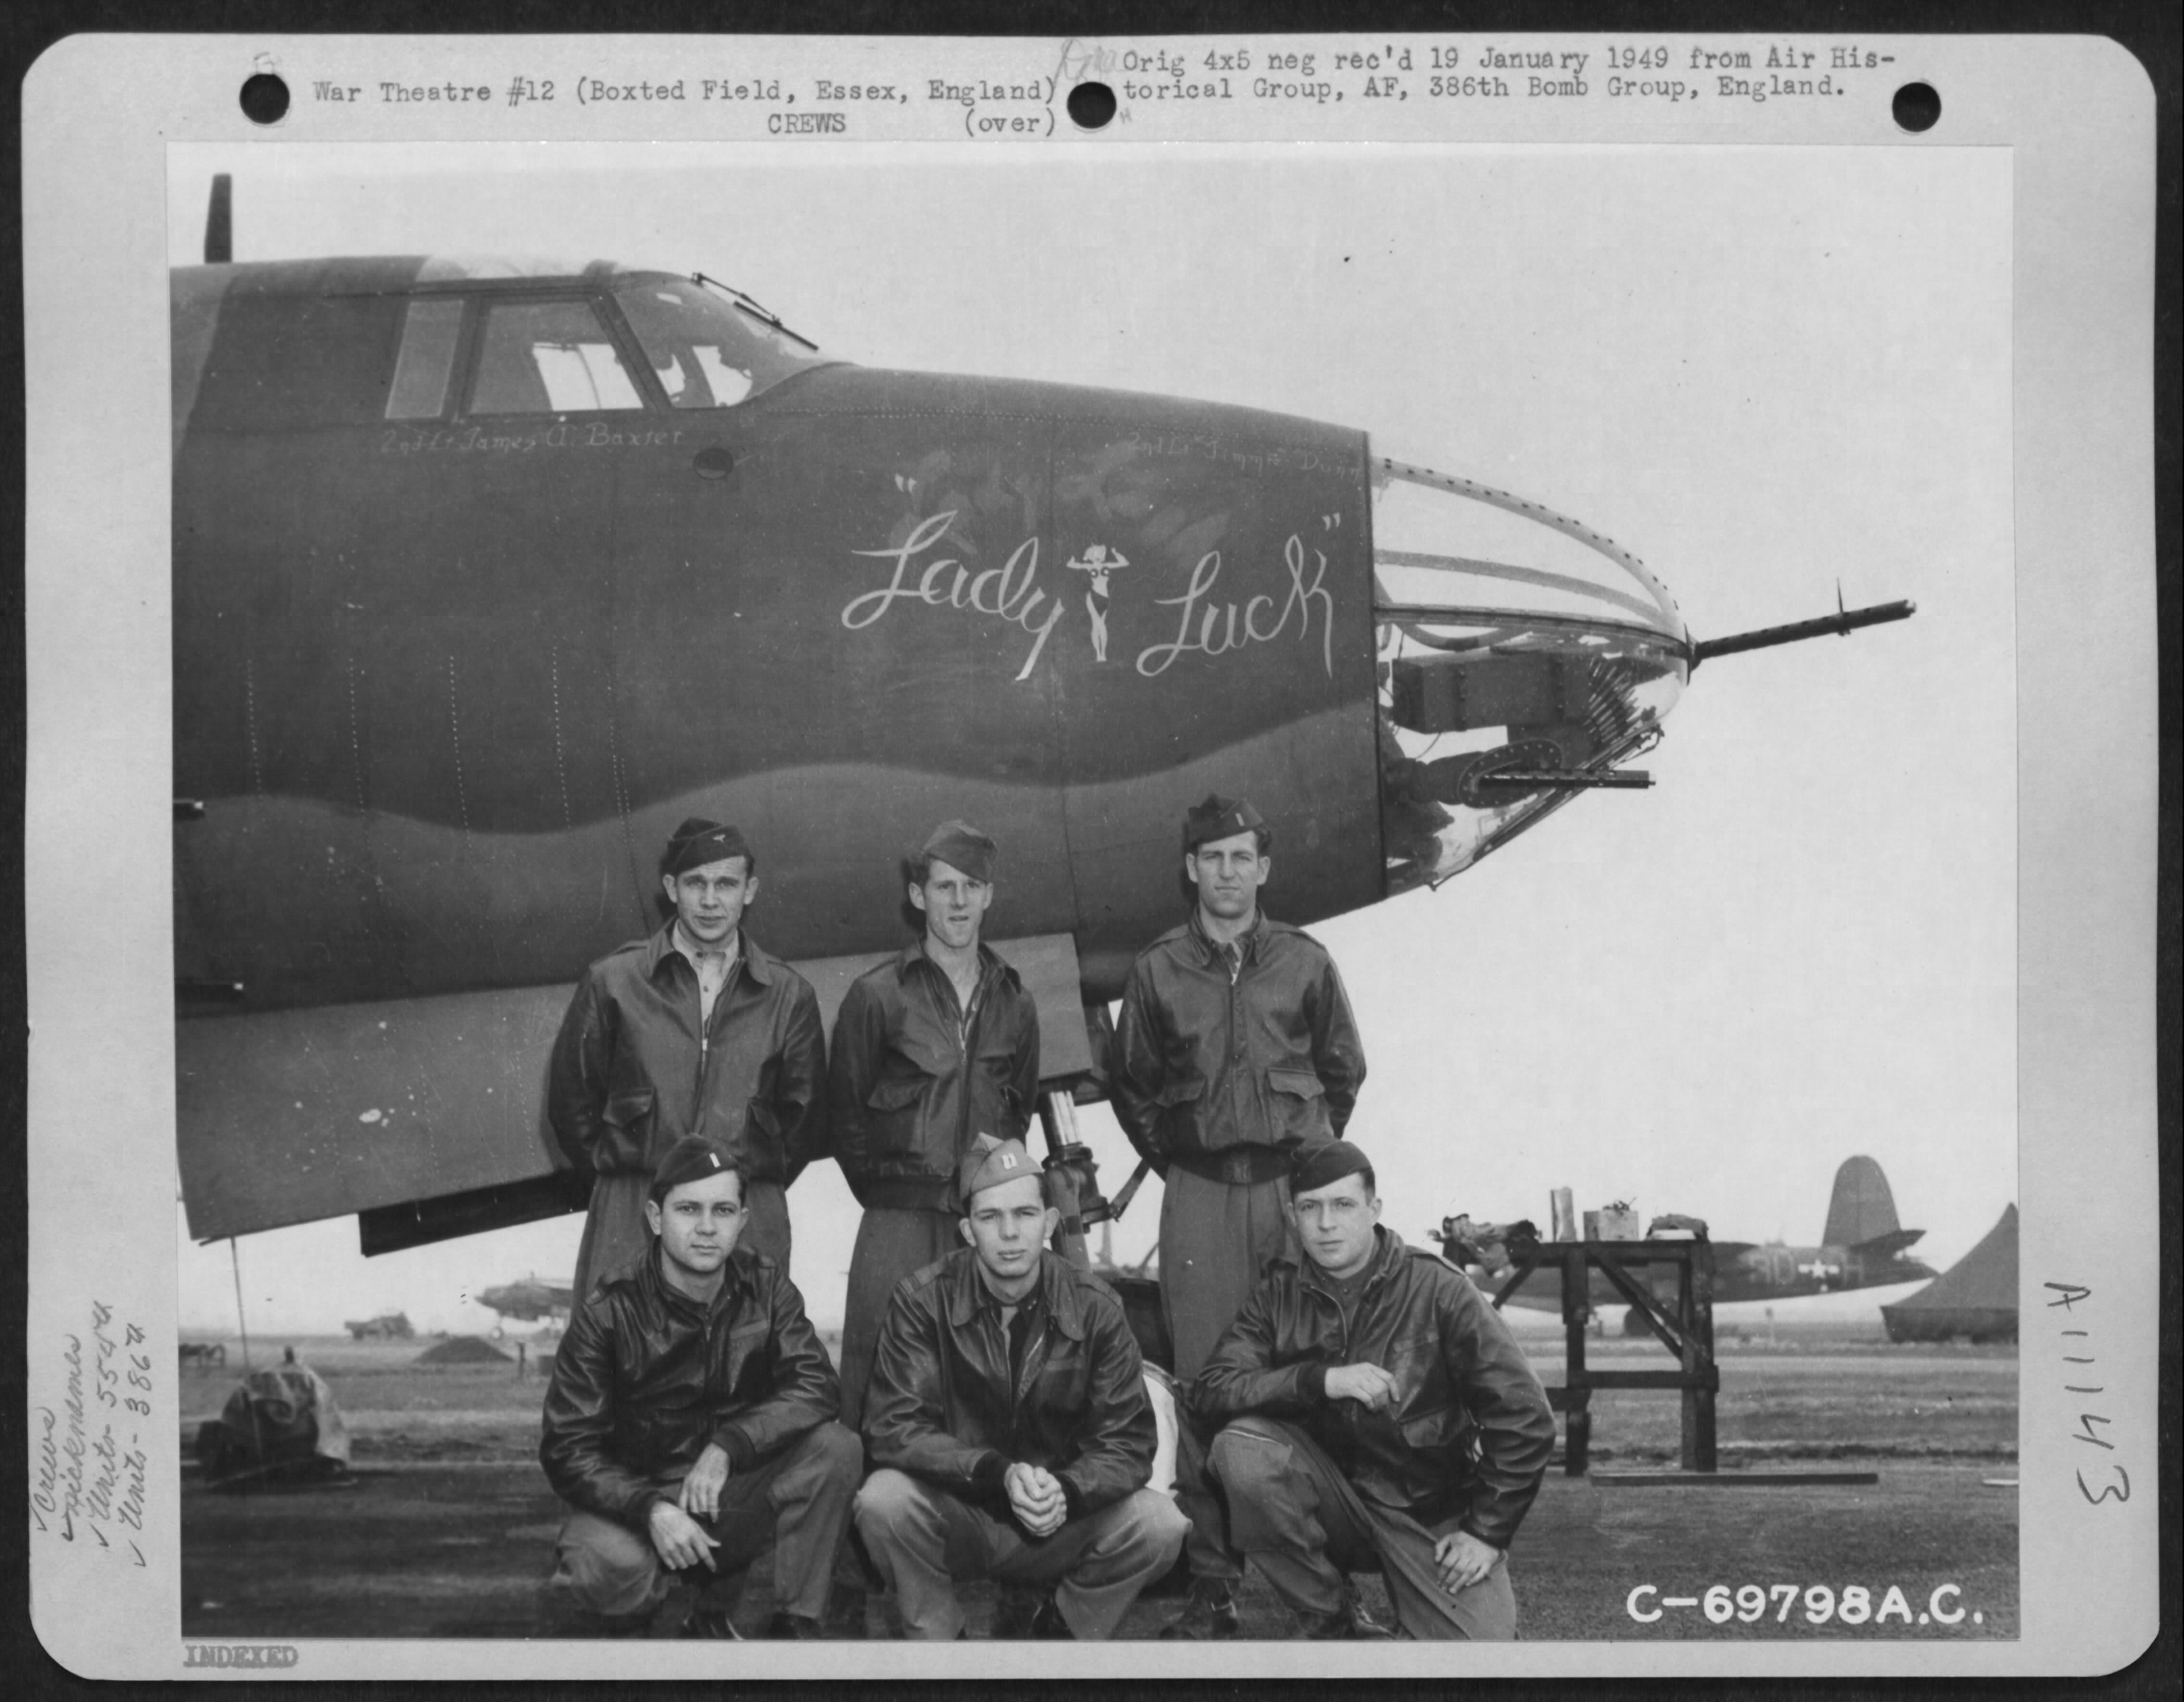 USAAF 41 34947 B 26C Marauder 386BG554BS RUK Lady Luck with crew at their base in Boxted Essex England 12 Sep 1943 02